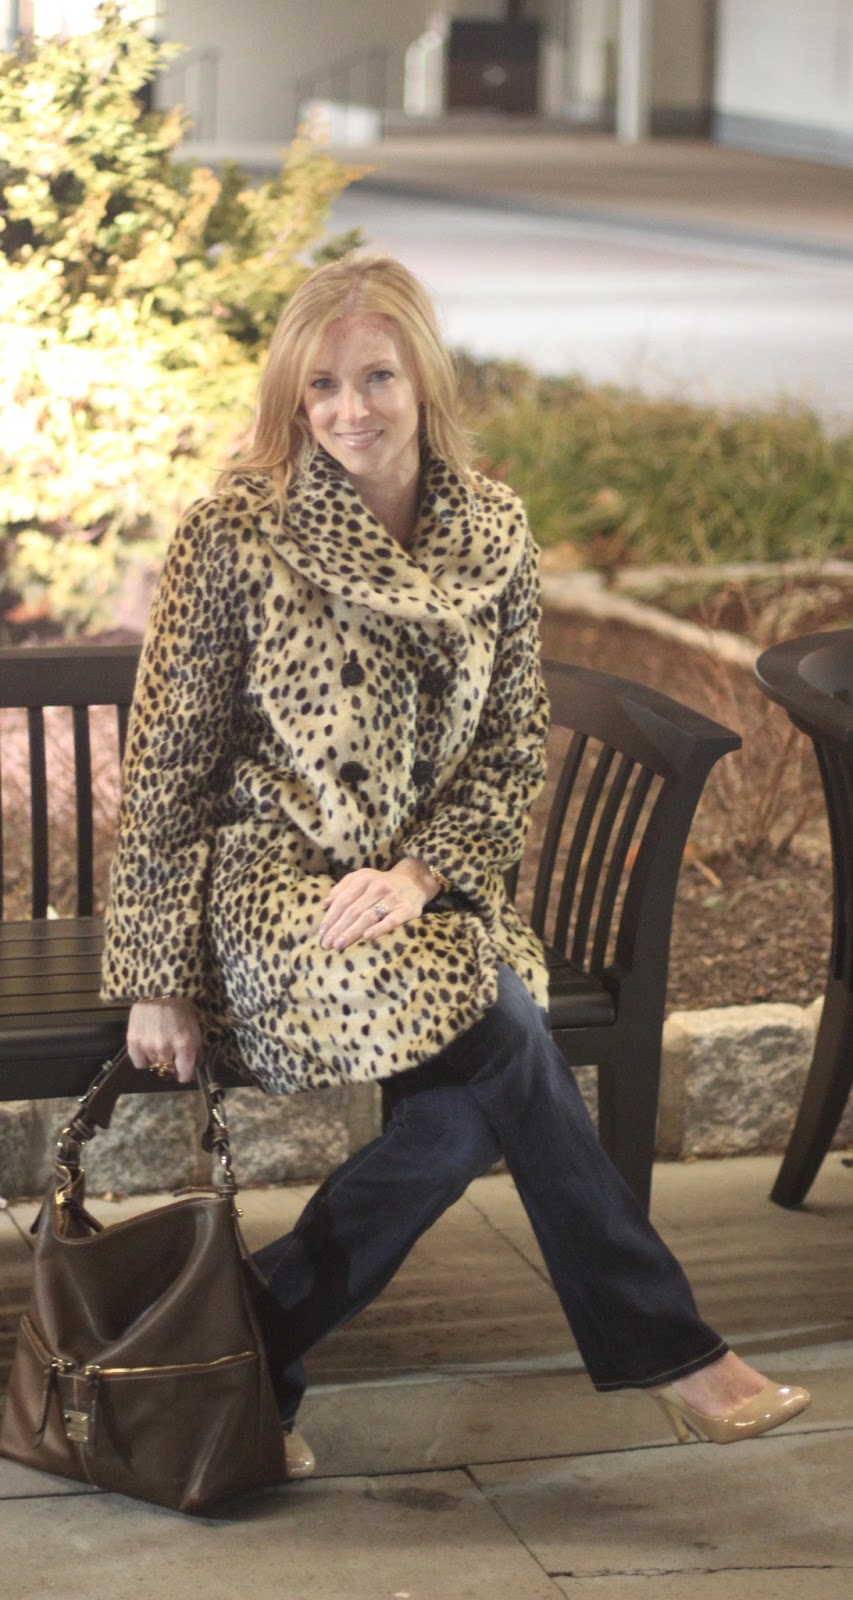 Banana Republic, chic mom, Citizens of Humanity, cold night out, Dooney Bourke, faux fur coat, Forever 21, leopard print, LosPhoto, Nine West, Simply Lulu Design, Simply Lulu Style,